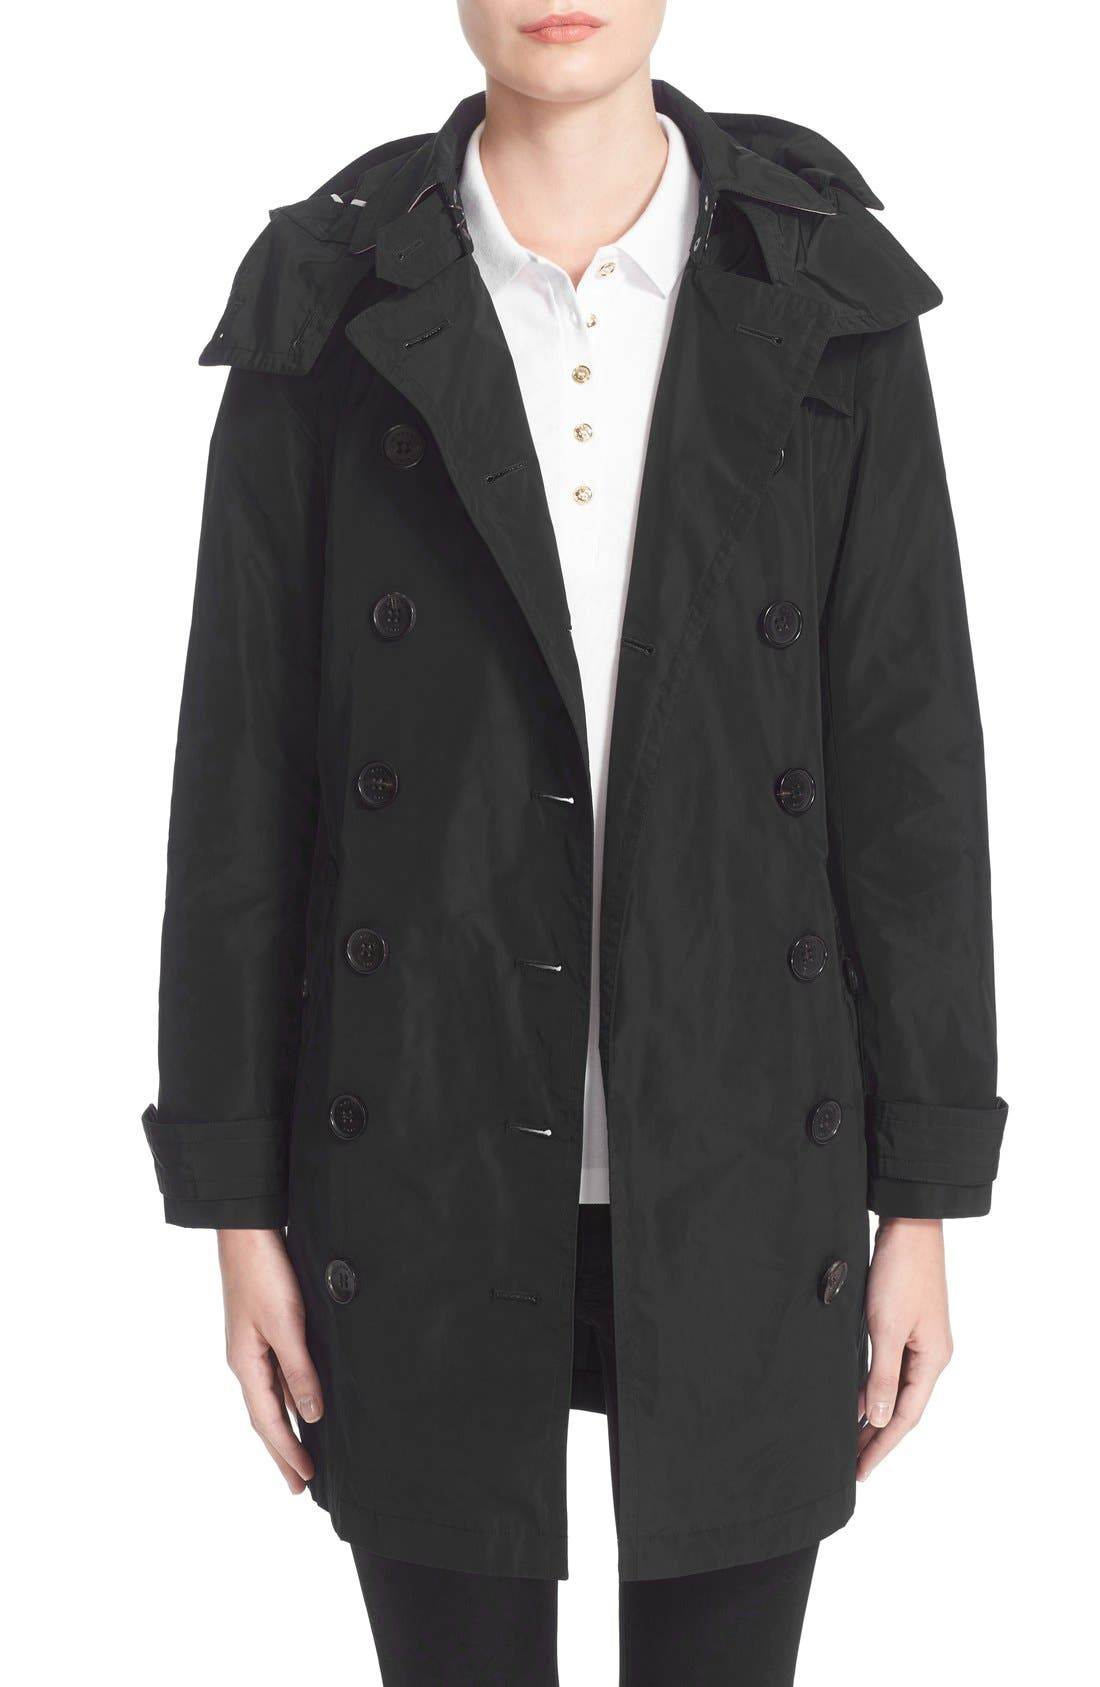 Burberry Balmoral Packable Trench